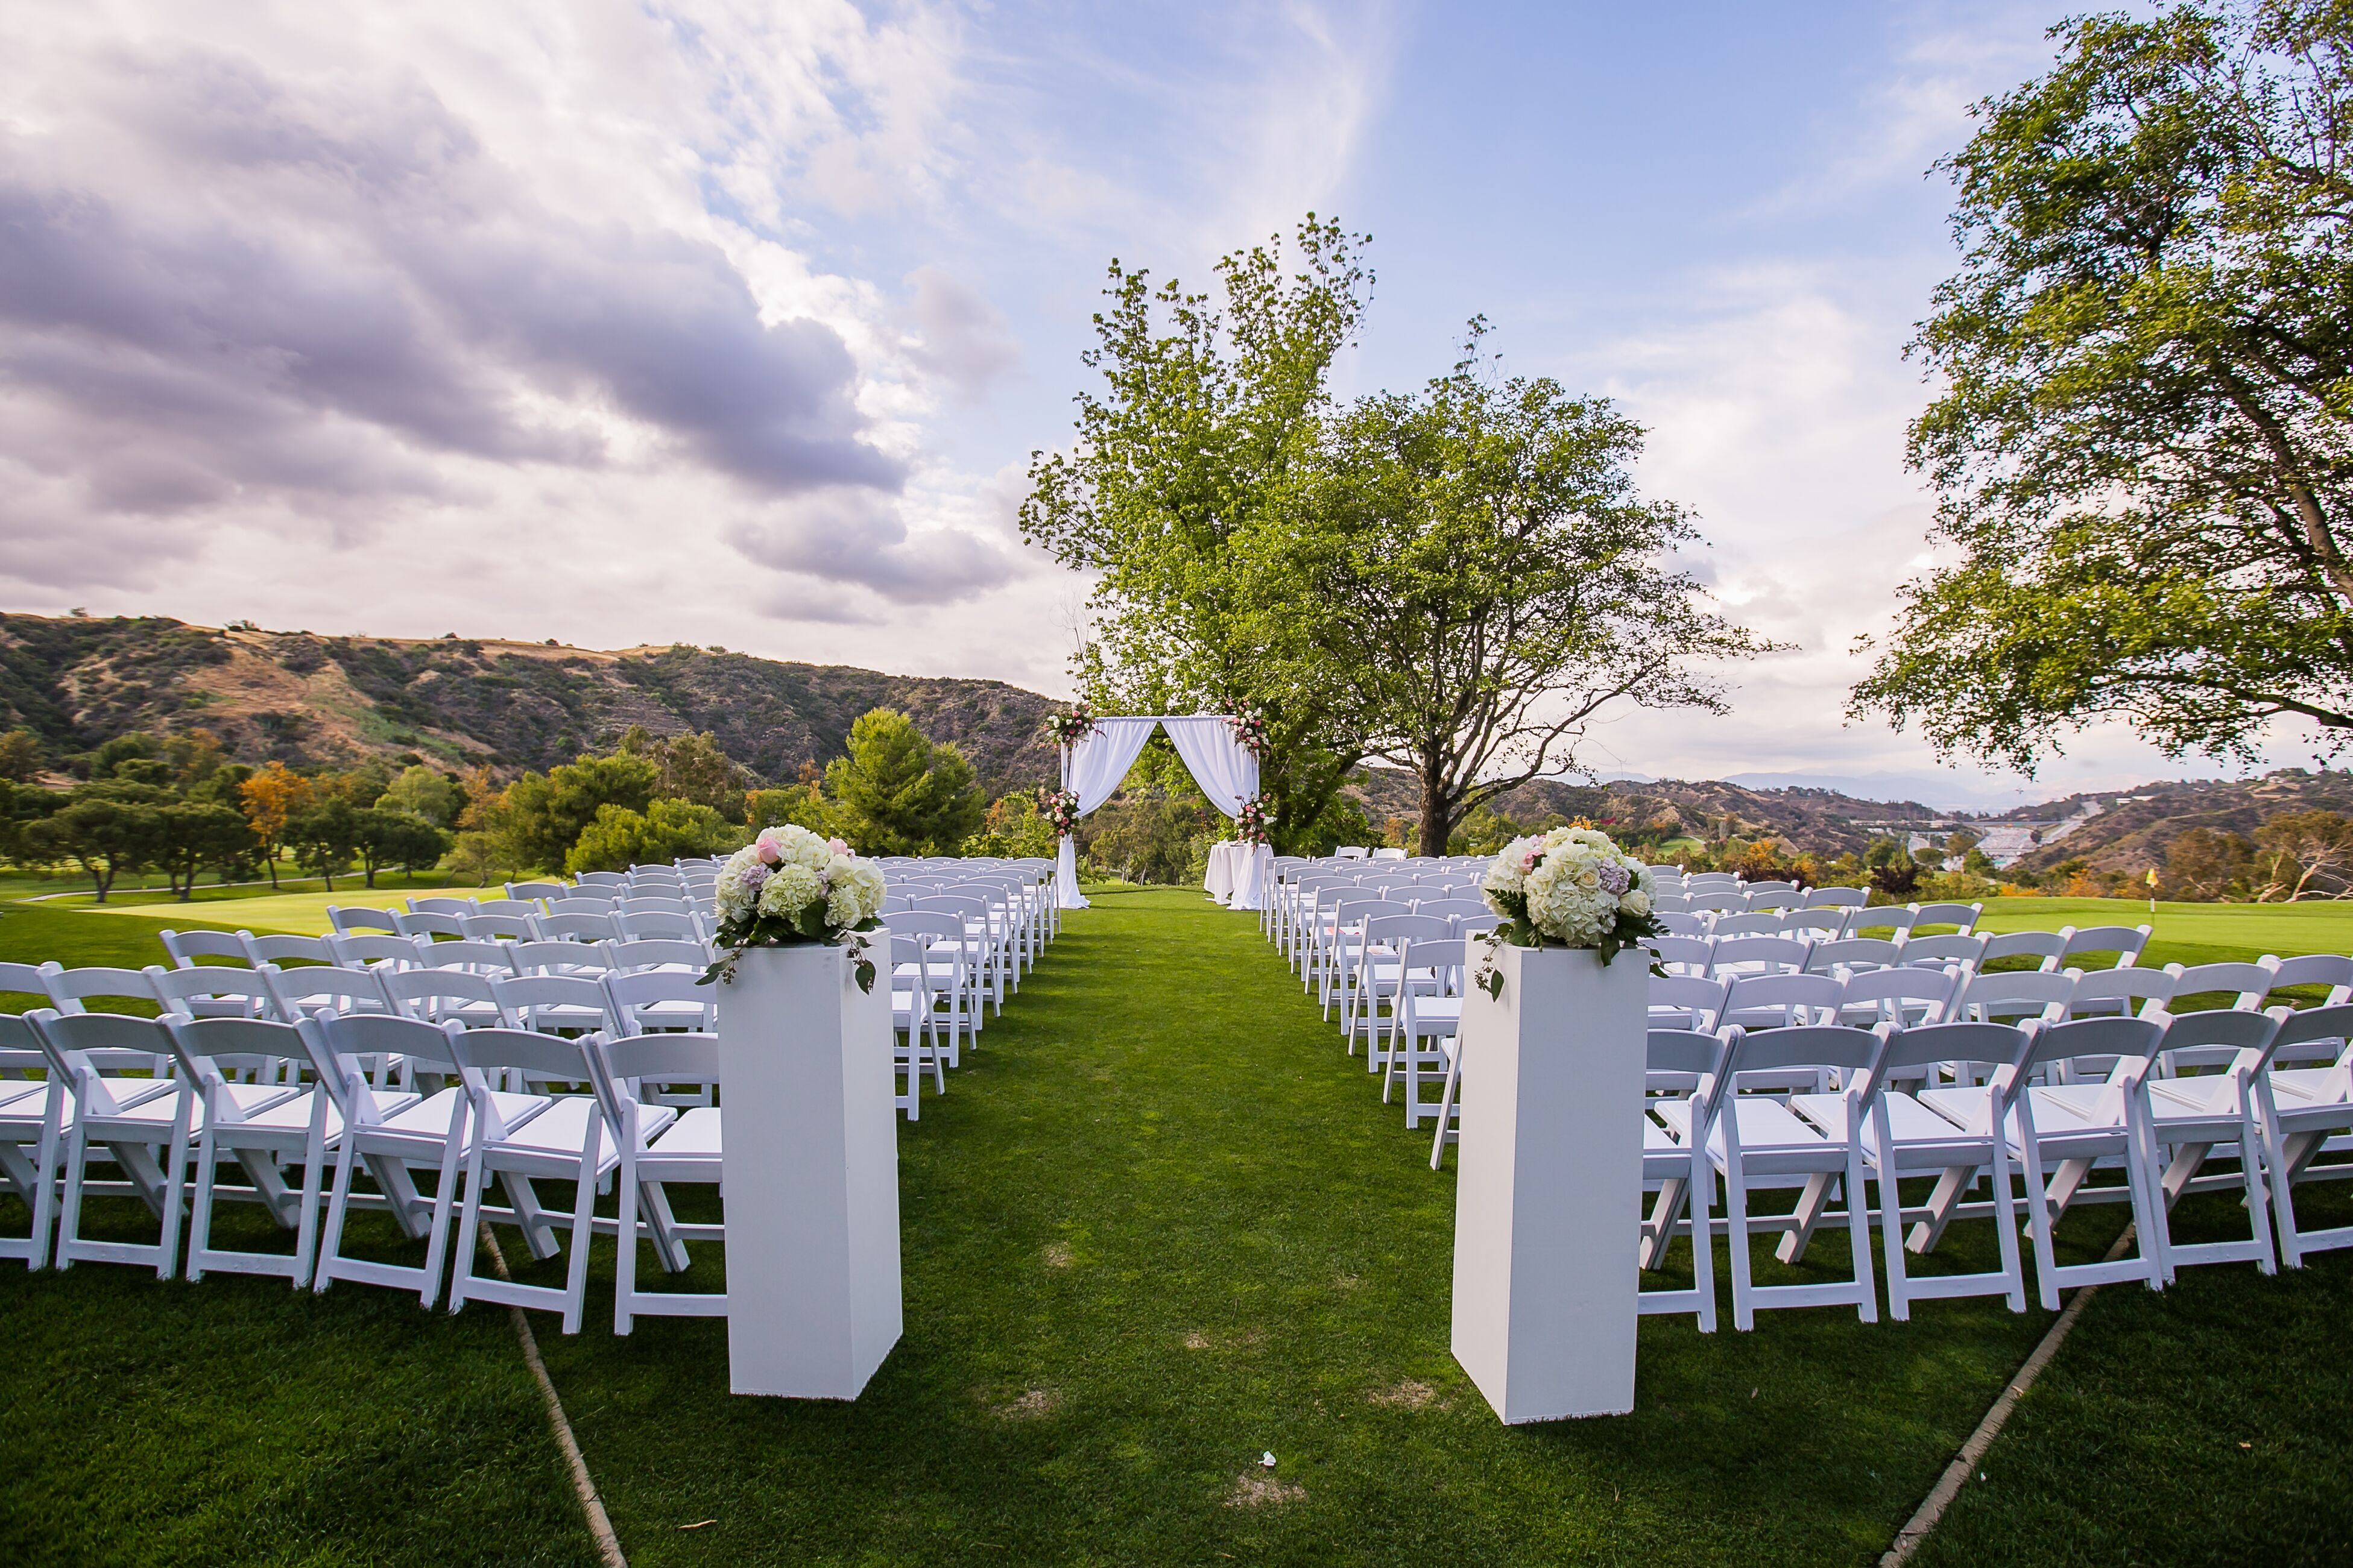 Places For Wedding Ceremony: MountainGate Country Club